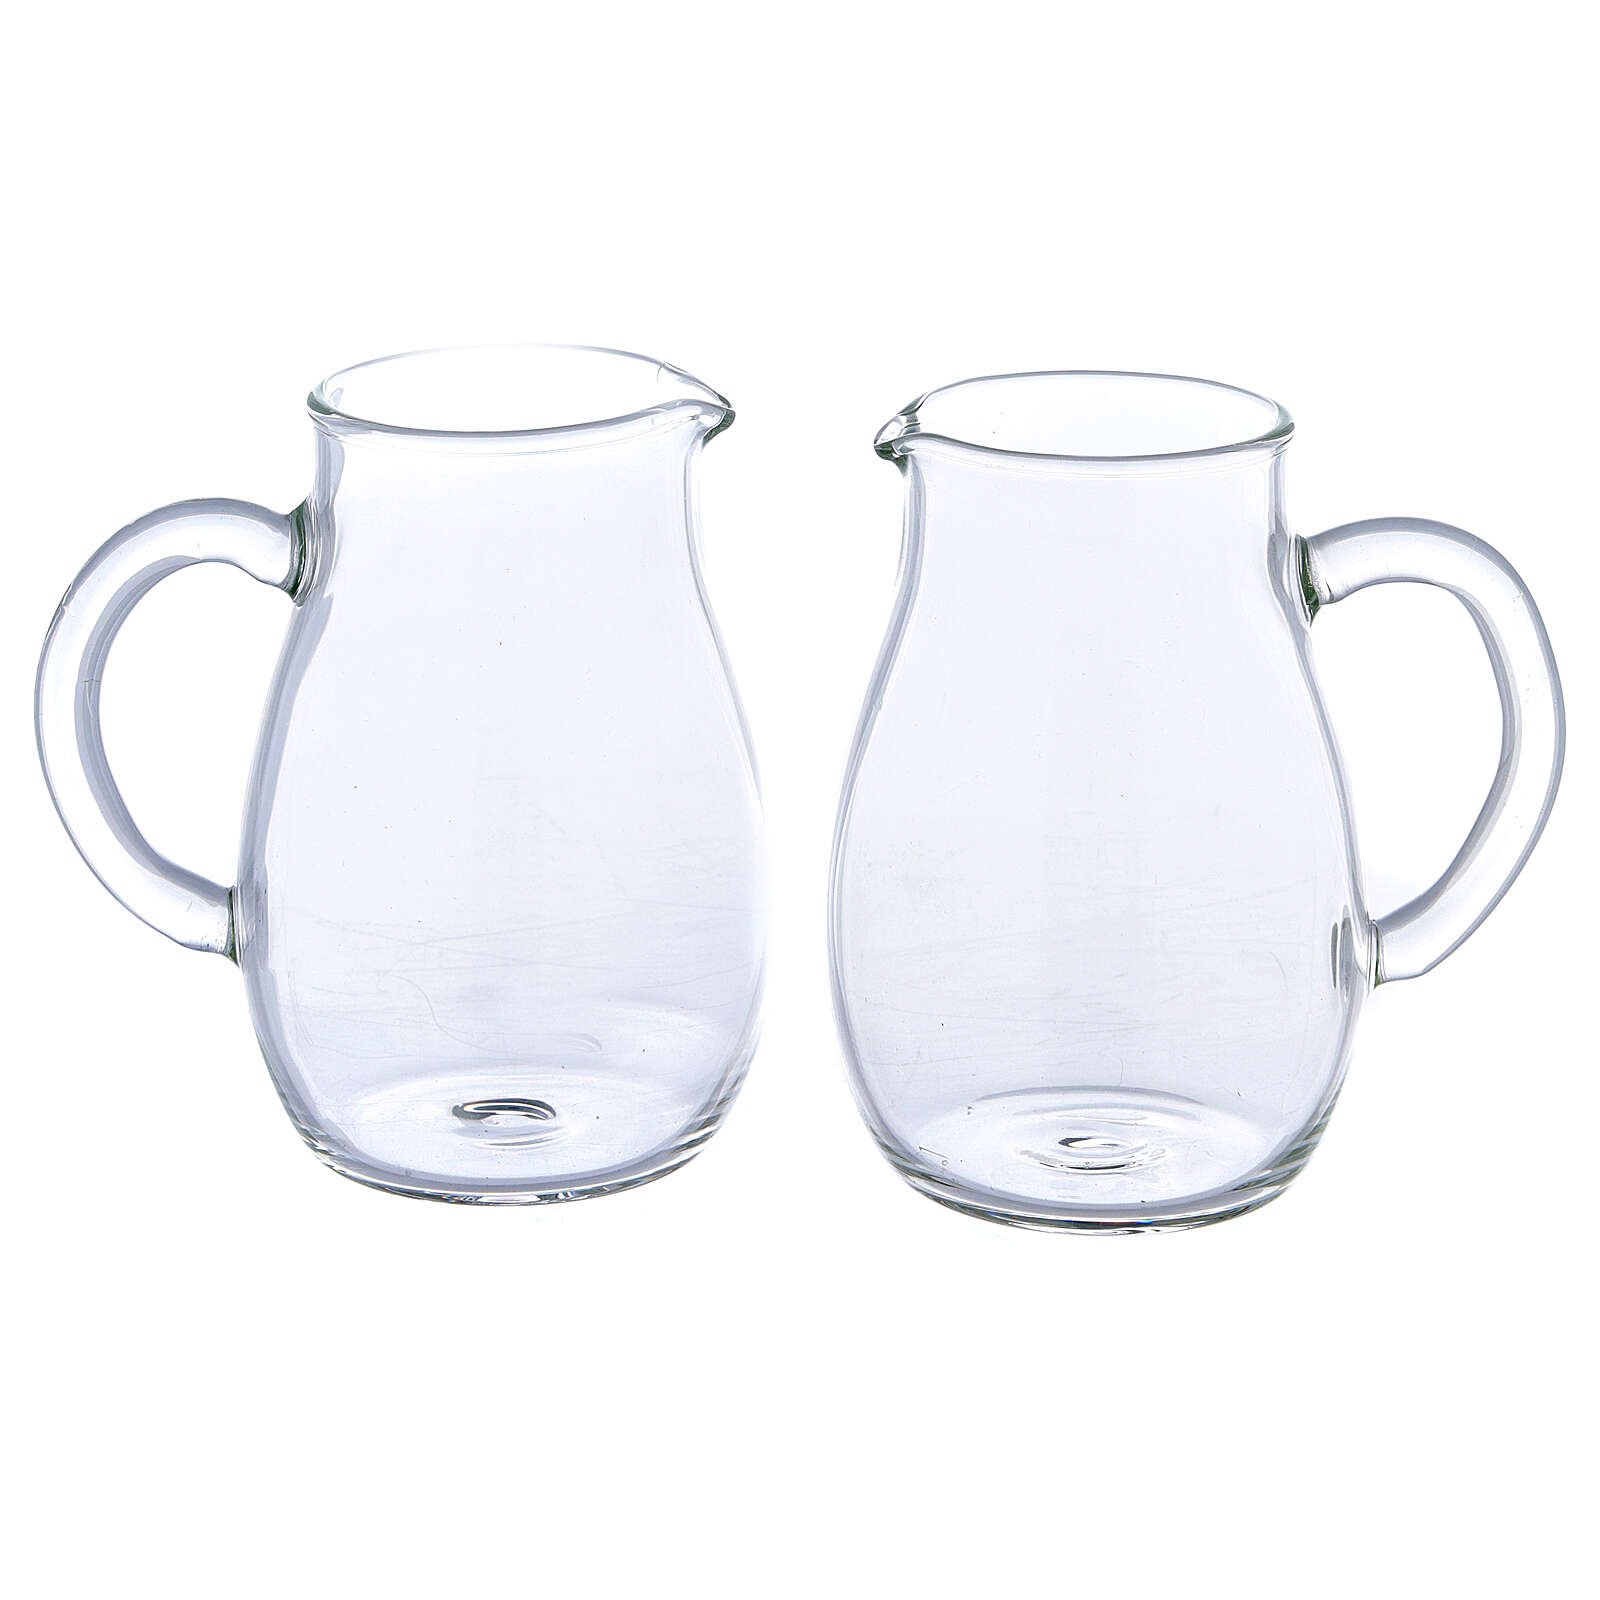 Round ewer Como model 160 ml, 2 pcs 4